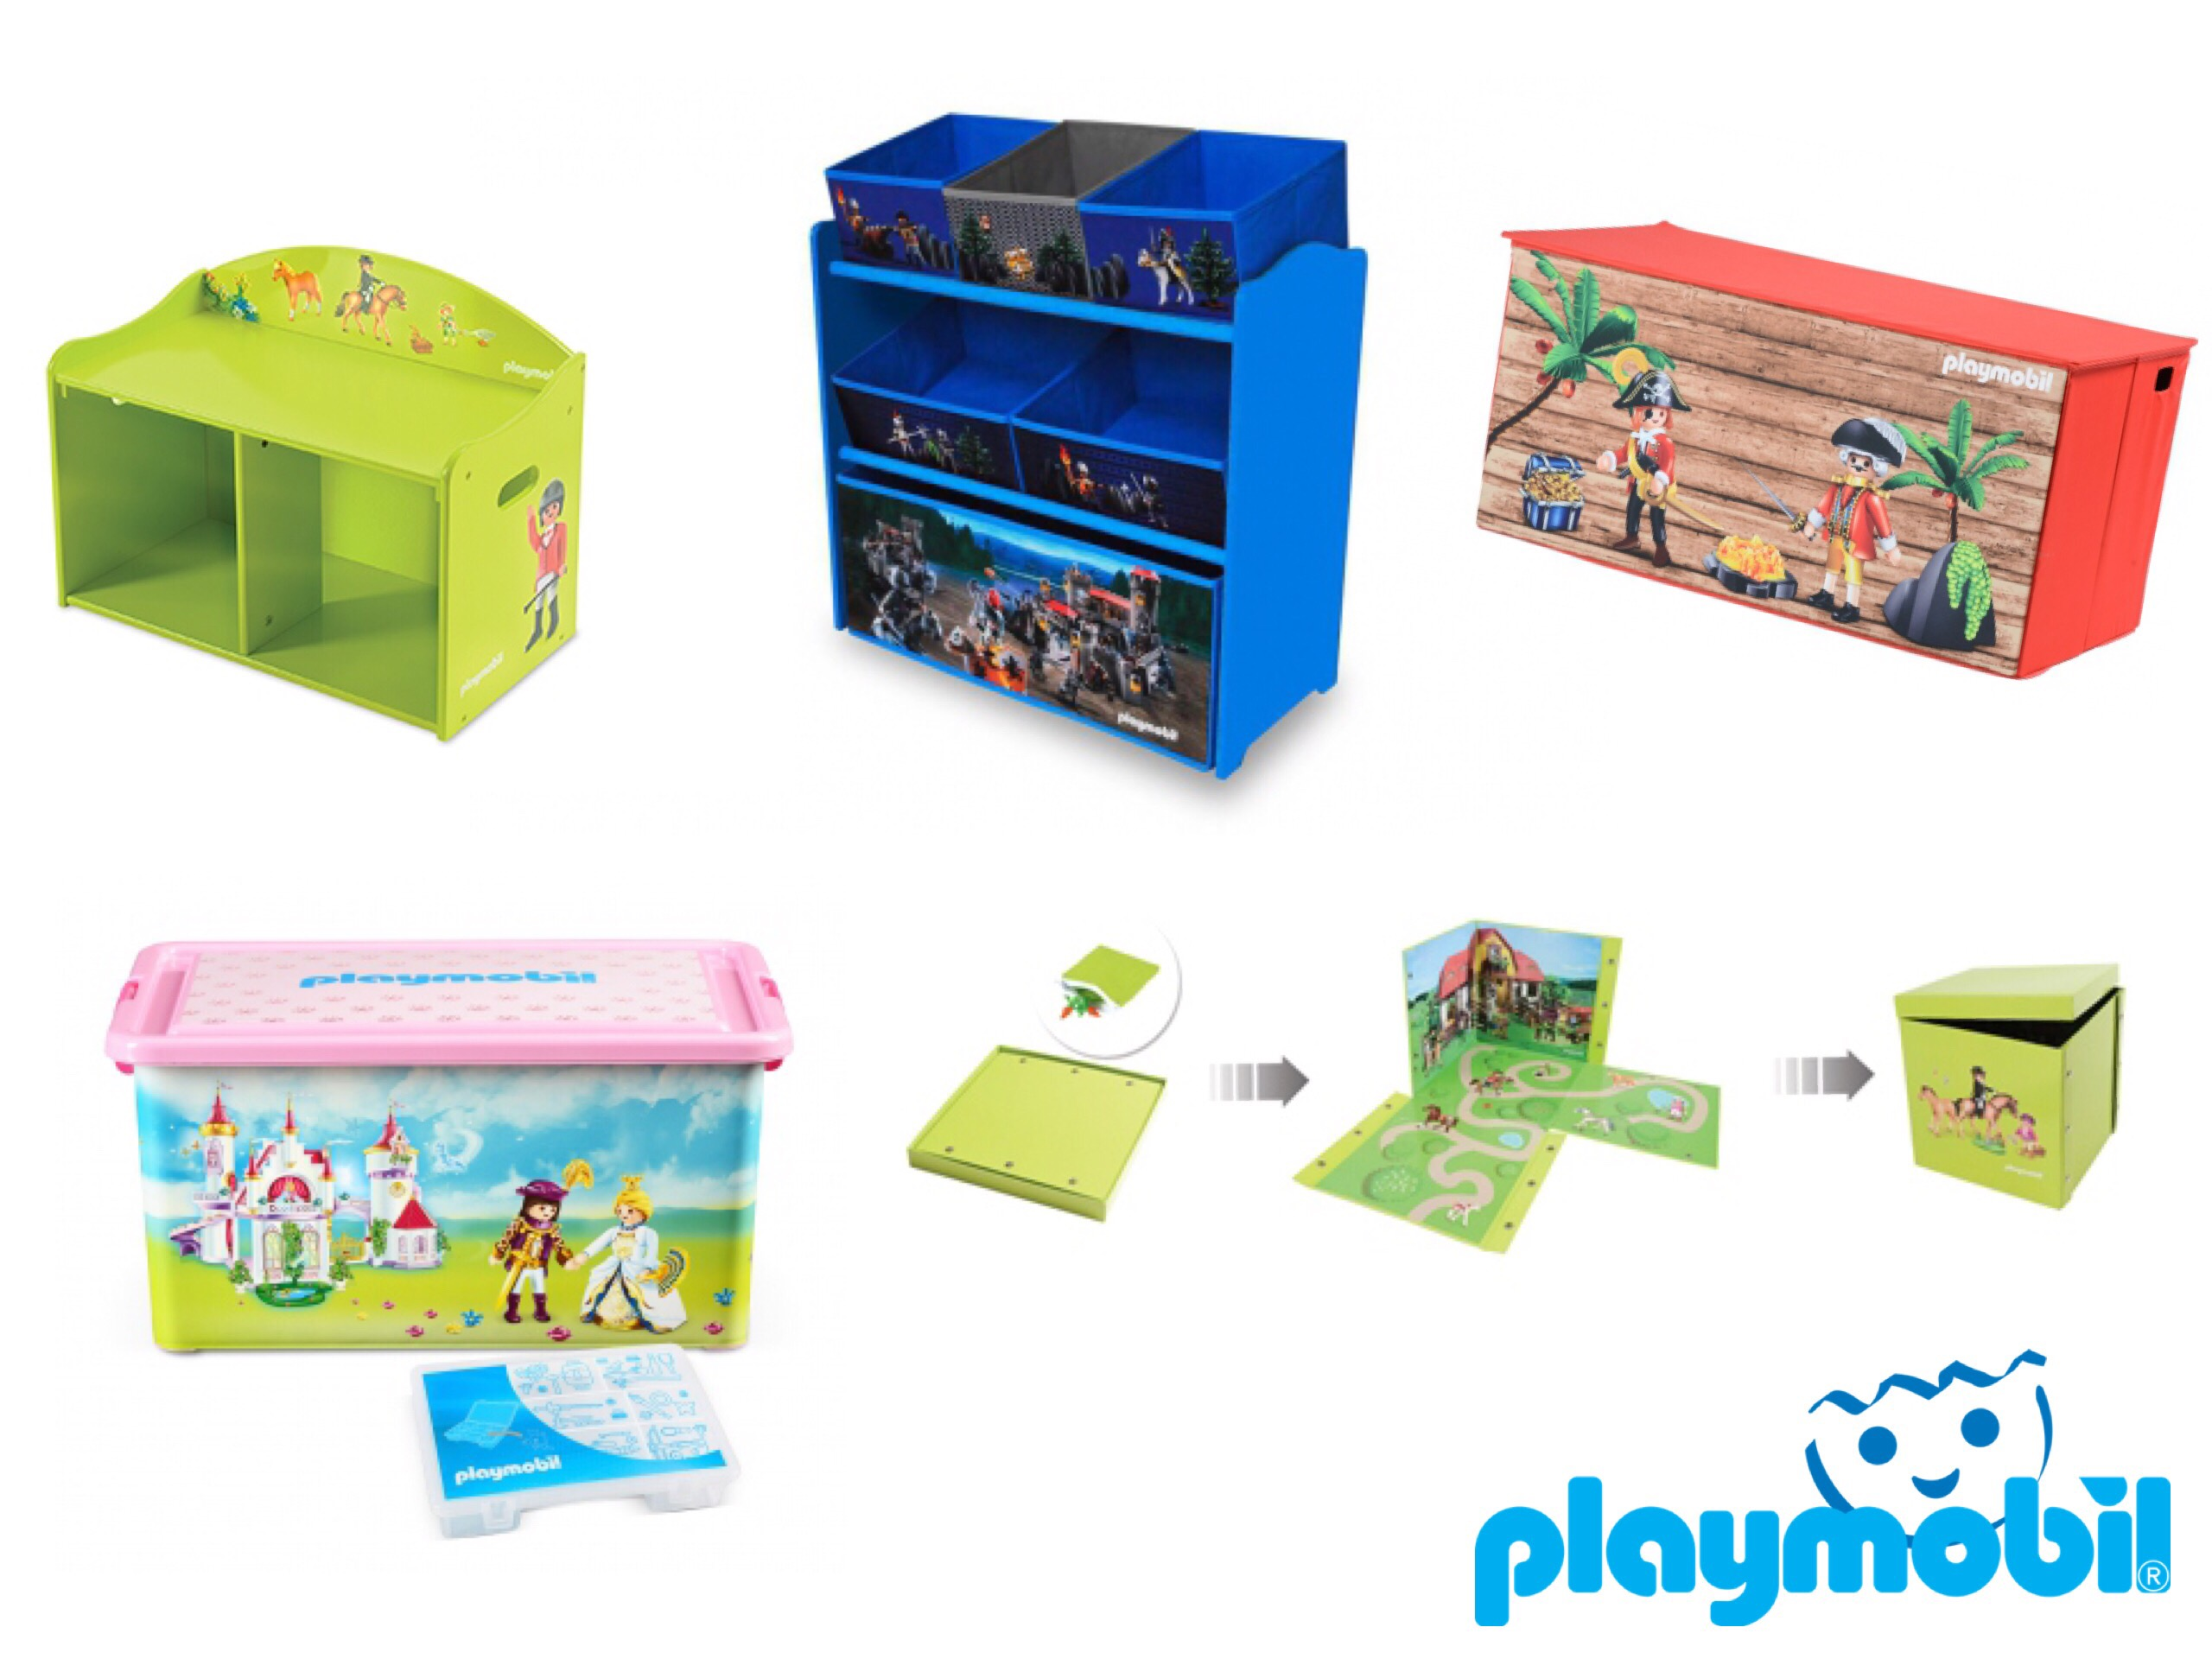 des playmobil bien rang s avec my note deco concours inside. Black Bedroom Furniture Sets. Home Design Ideas